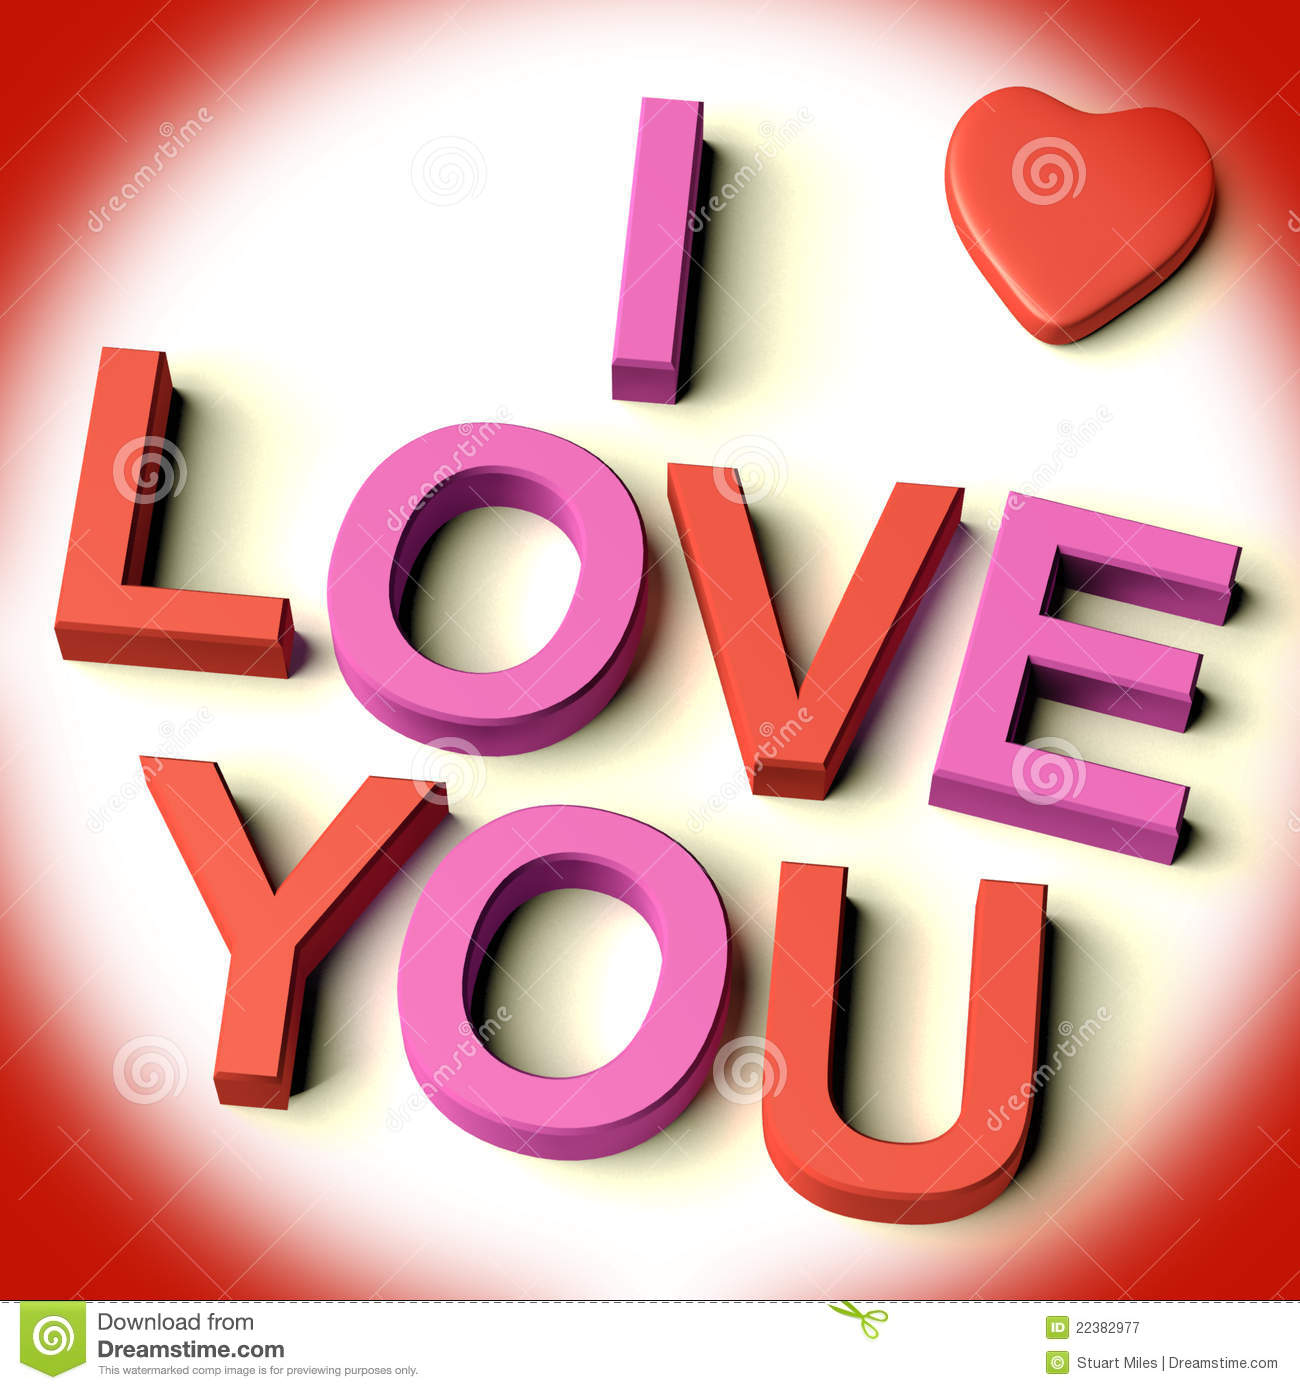 letters spelling i love you with heart